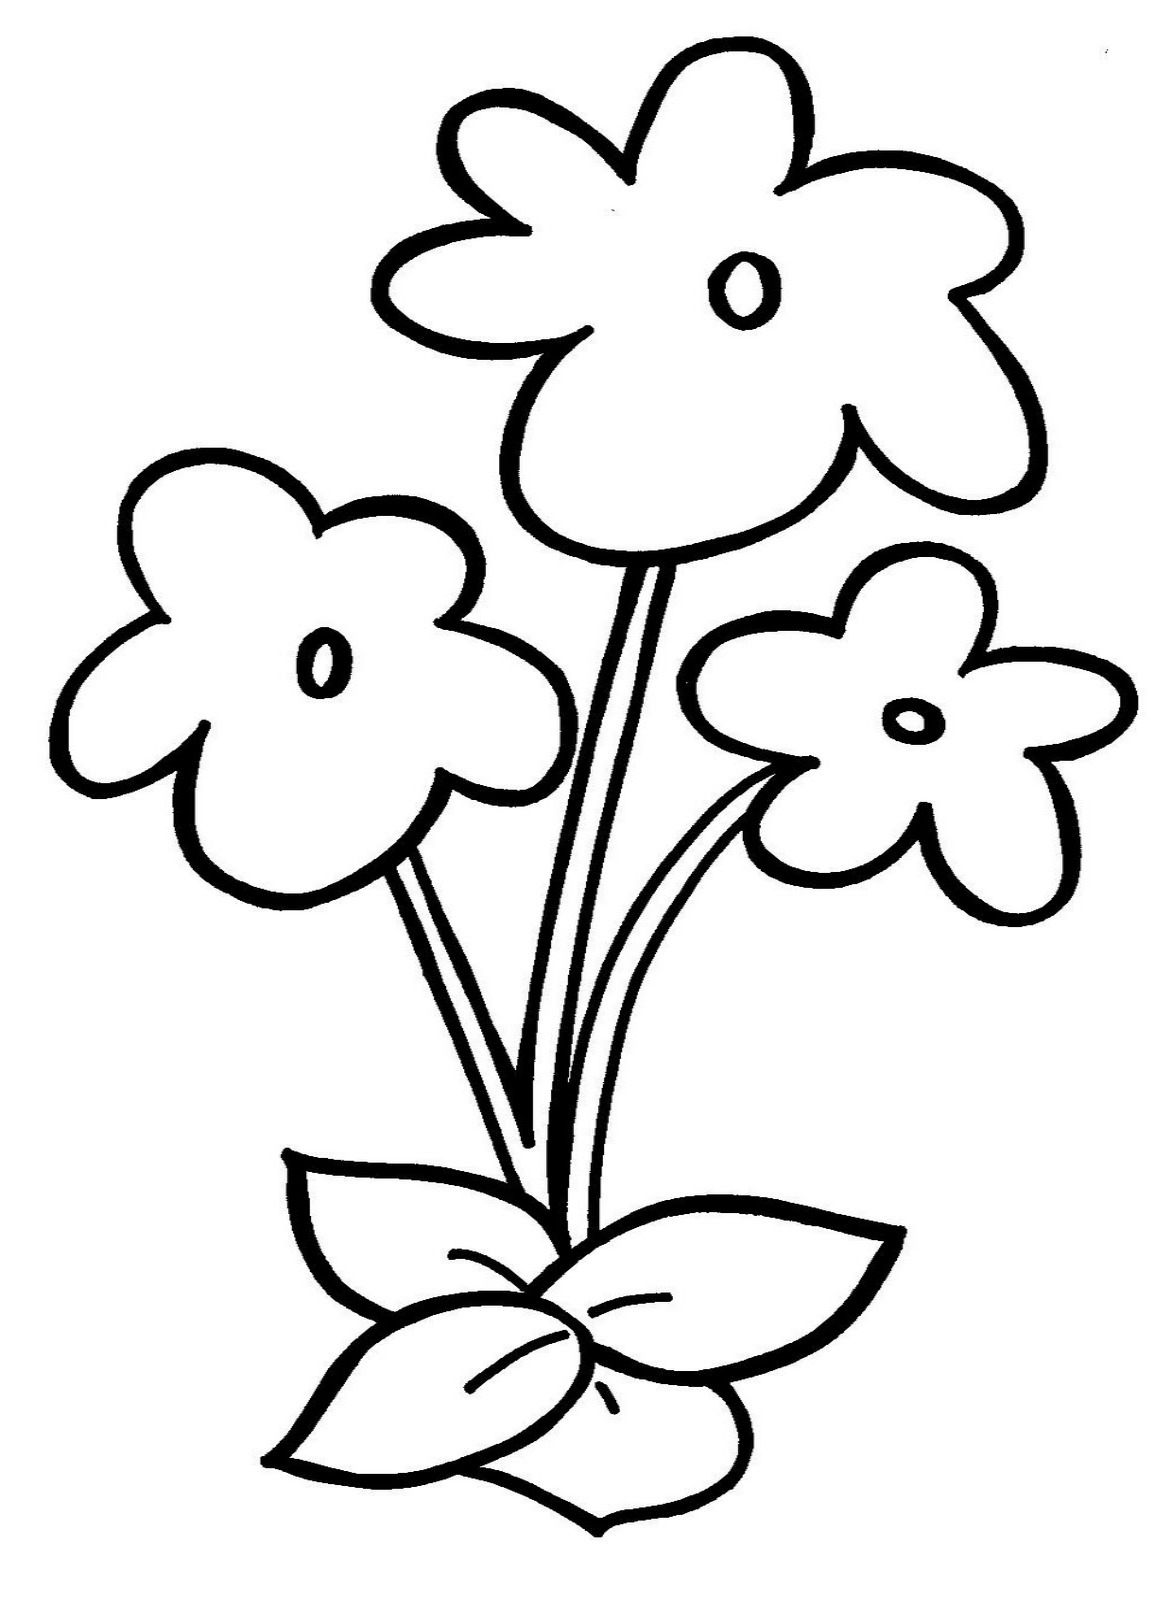 Colouring flowers pictures